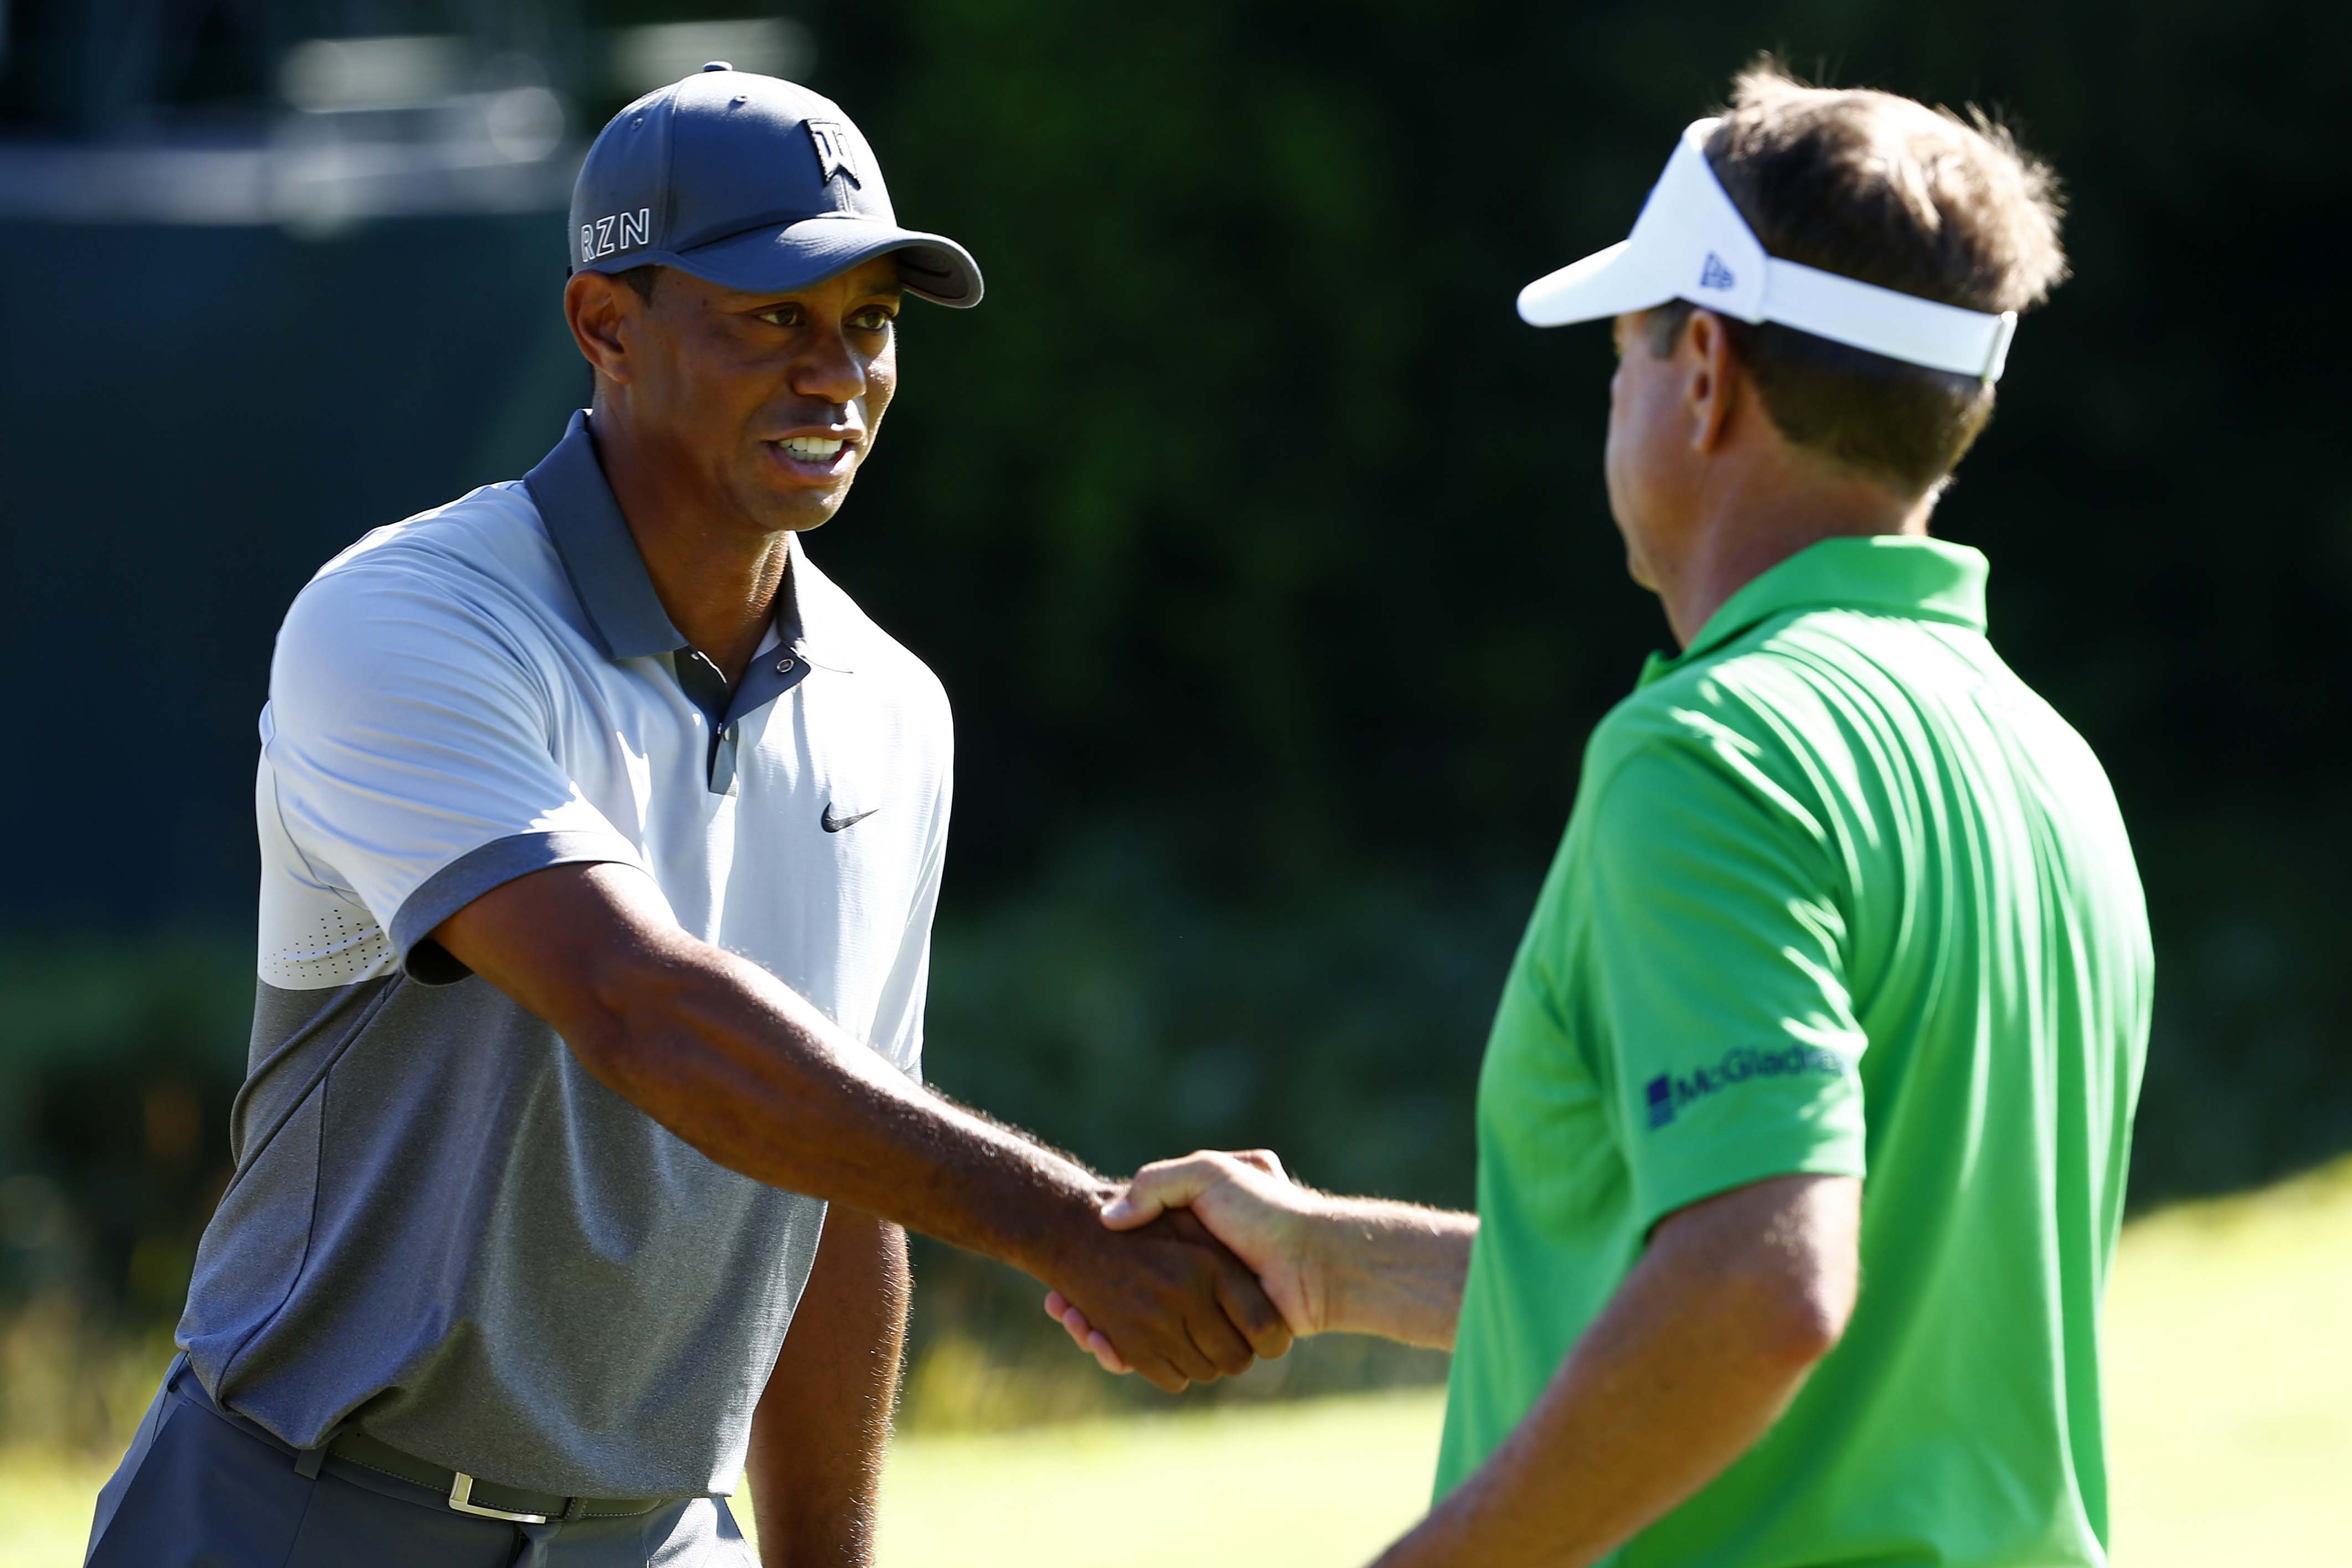 Tiger Woods calling Davis Love during the Prez Cup to volunteer as an assistant captain for the Ryder Cup